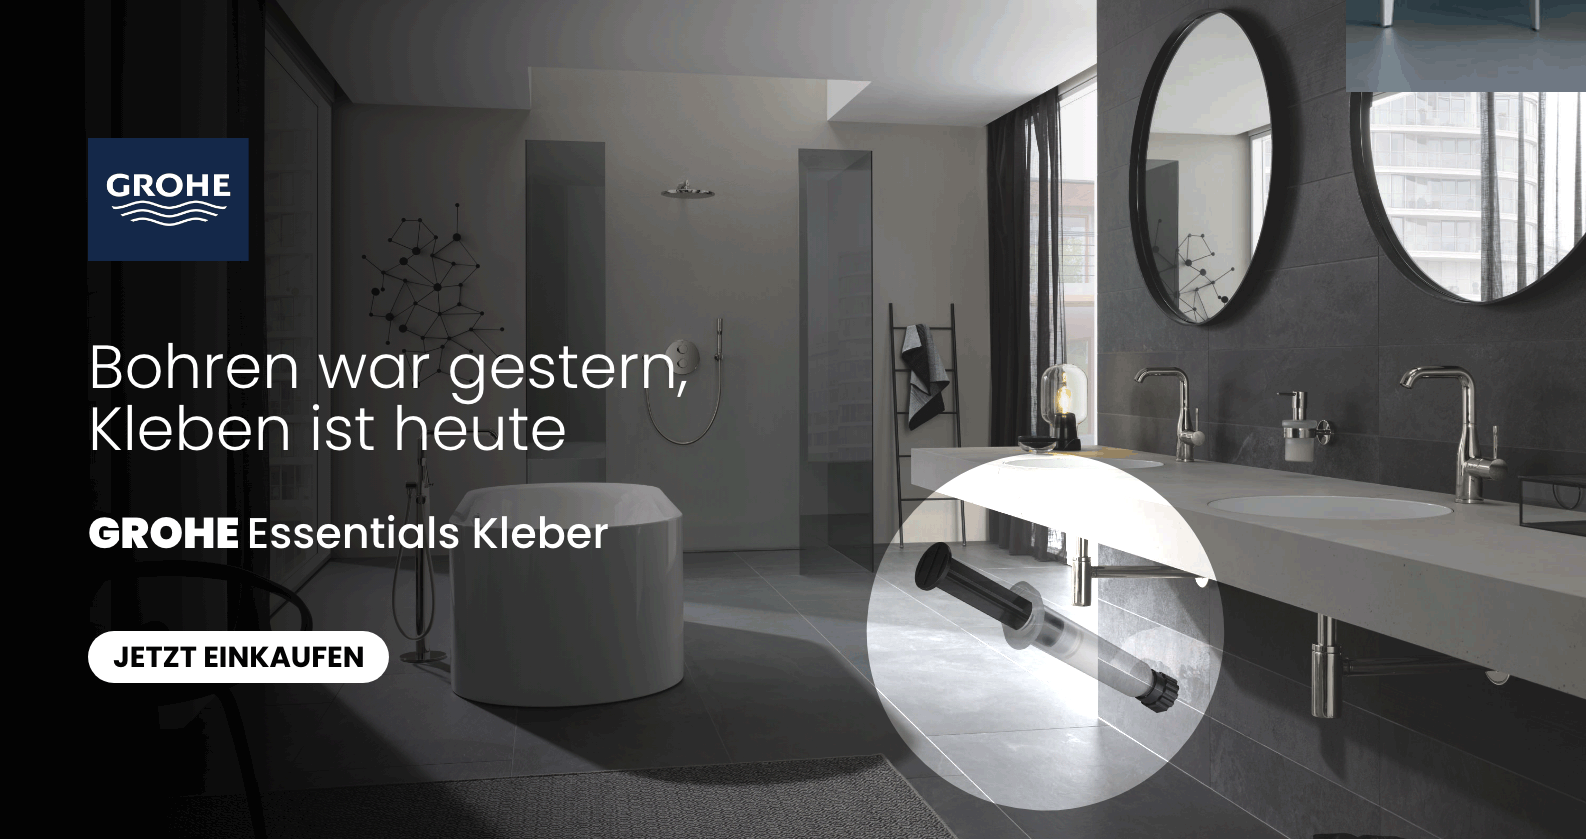 GROHE Kleber-Aktion bei xTWOstore